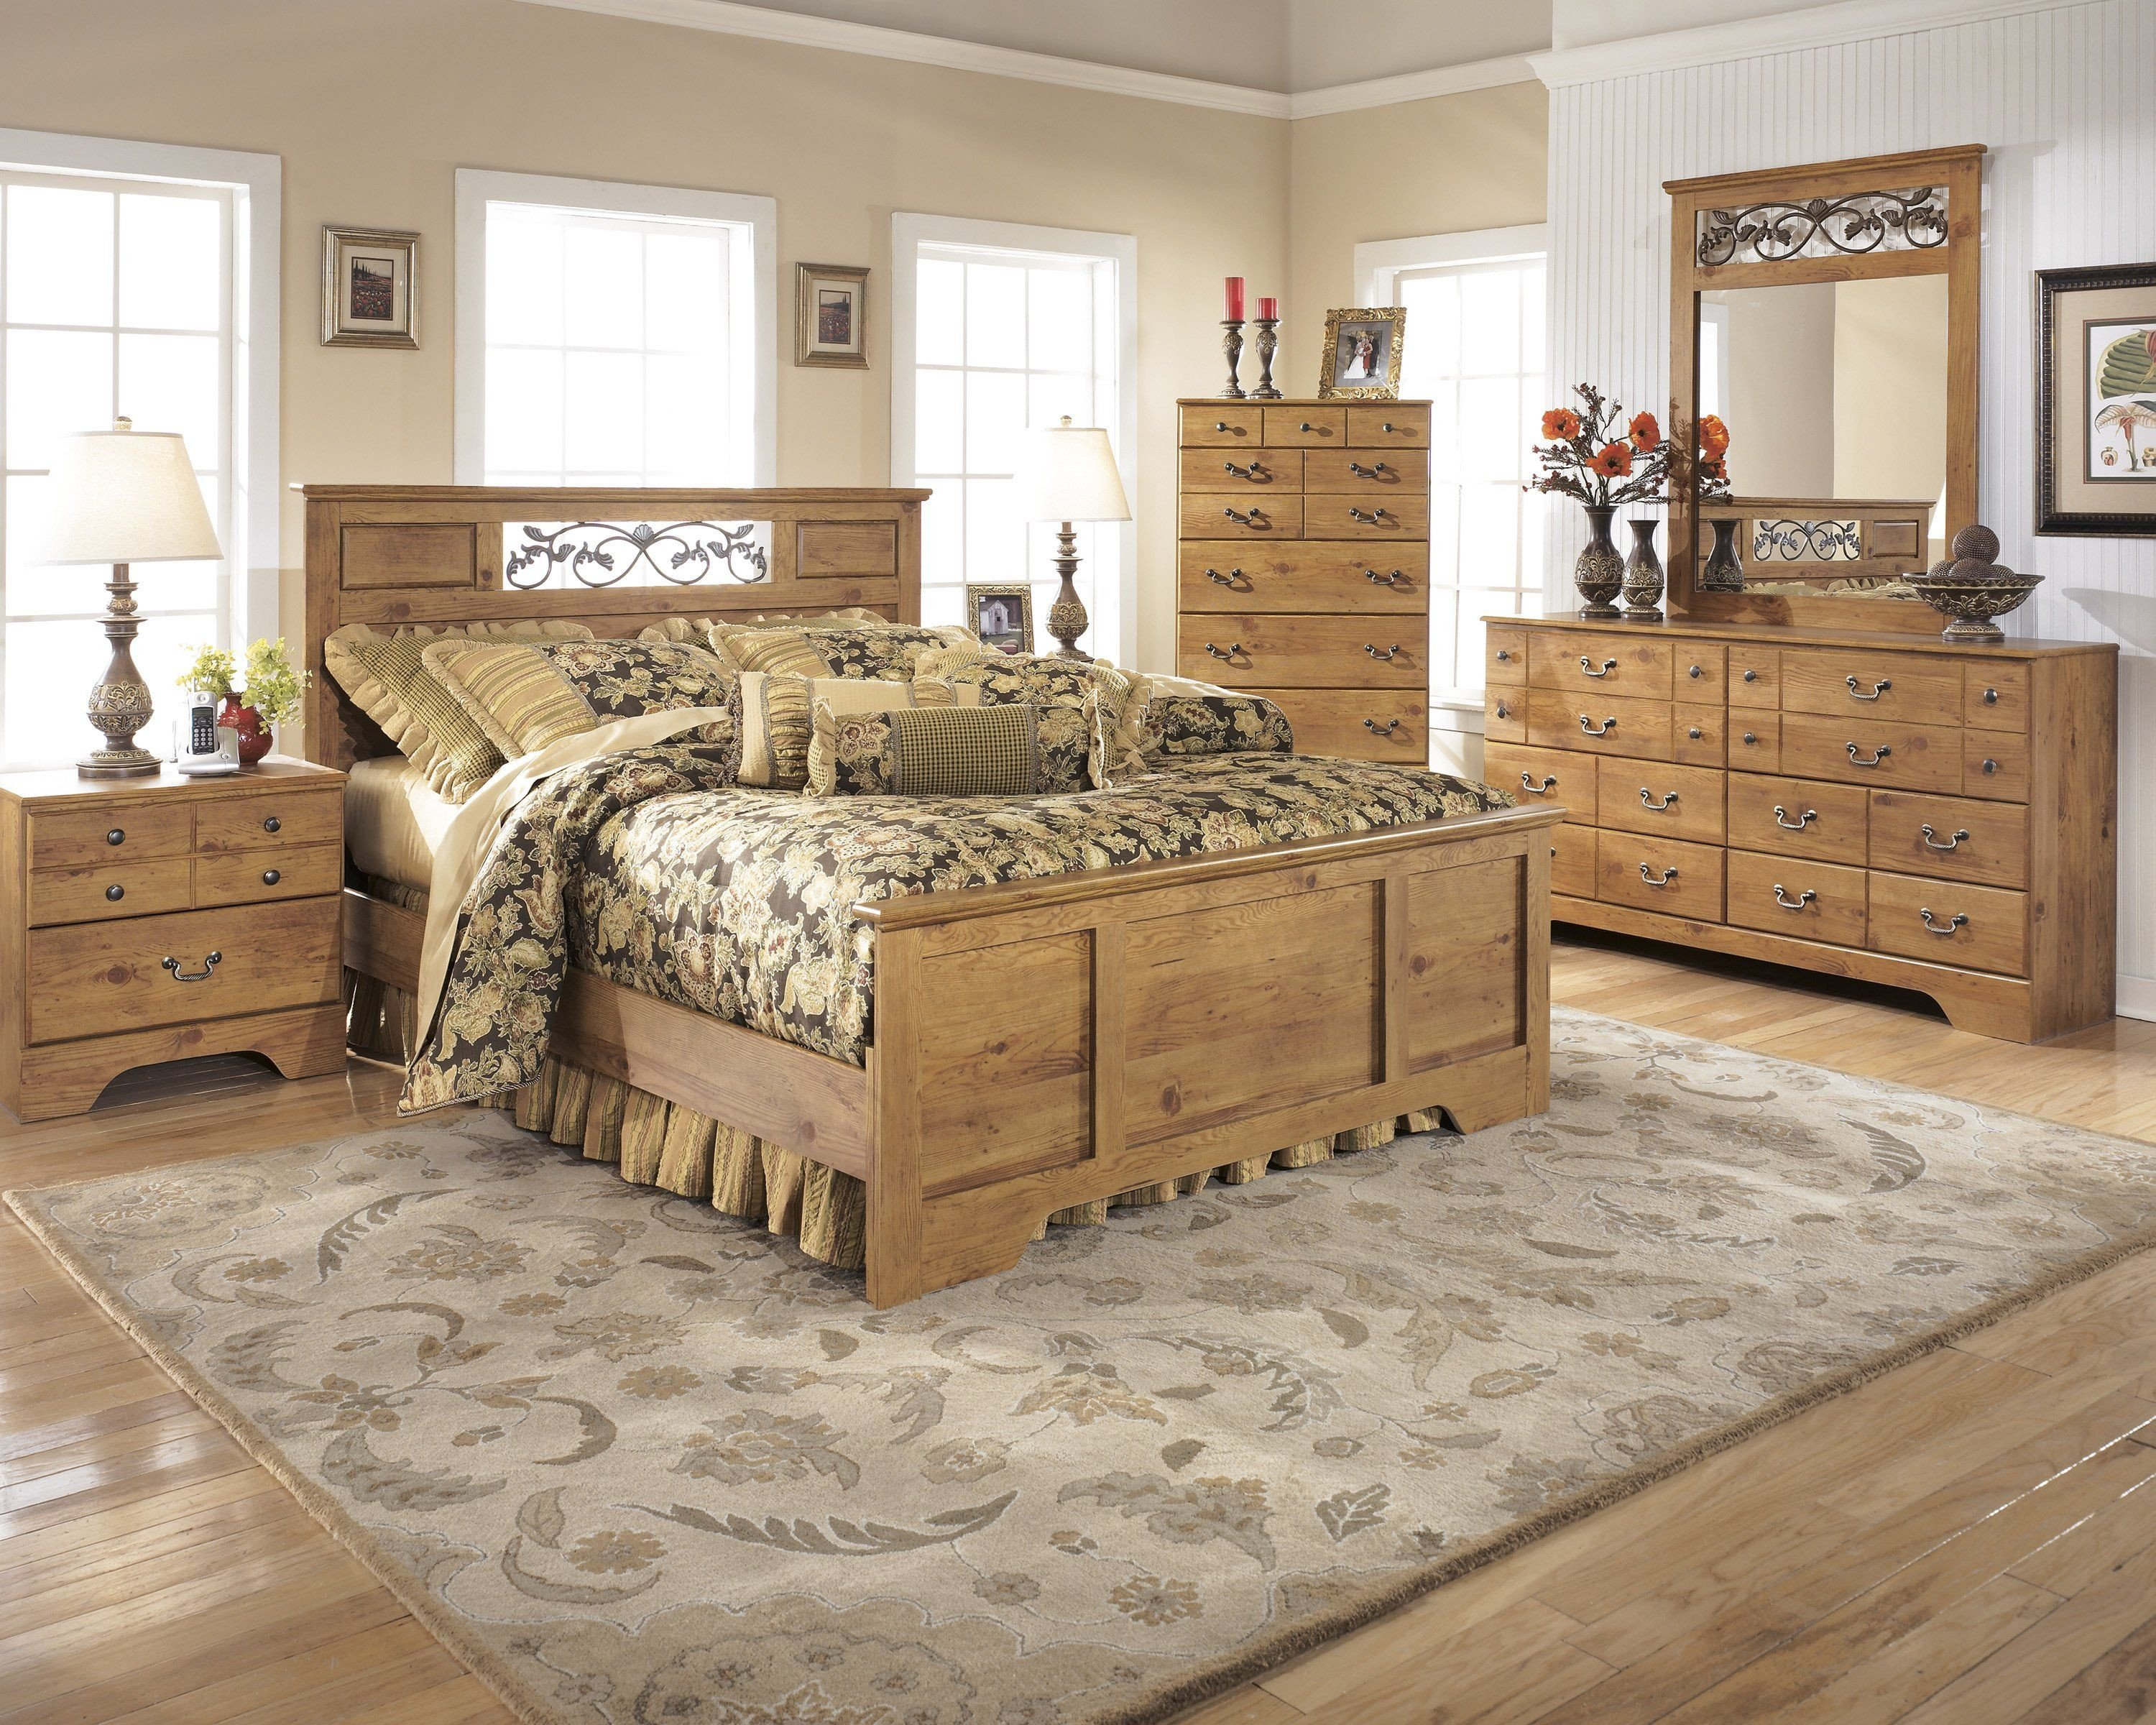 Rustic Queen Bedroom Set Lovely Signature Design by ashley Bittersweet 4 Piece Queen Panel